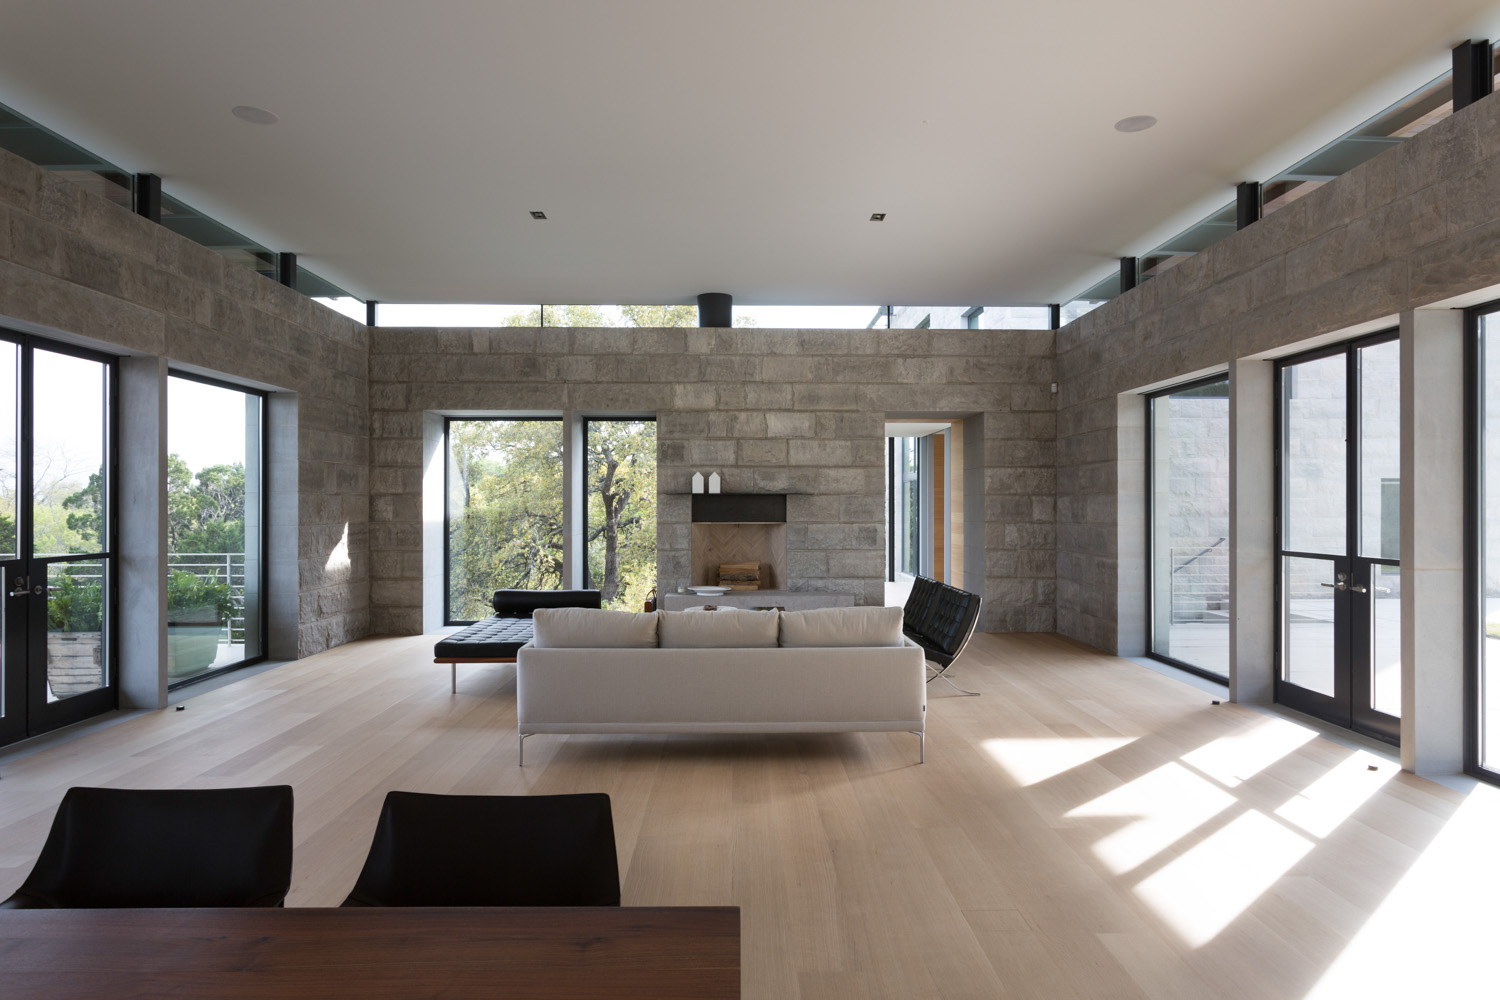 Mell Lawrence Architects